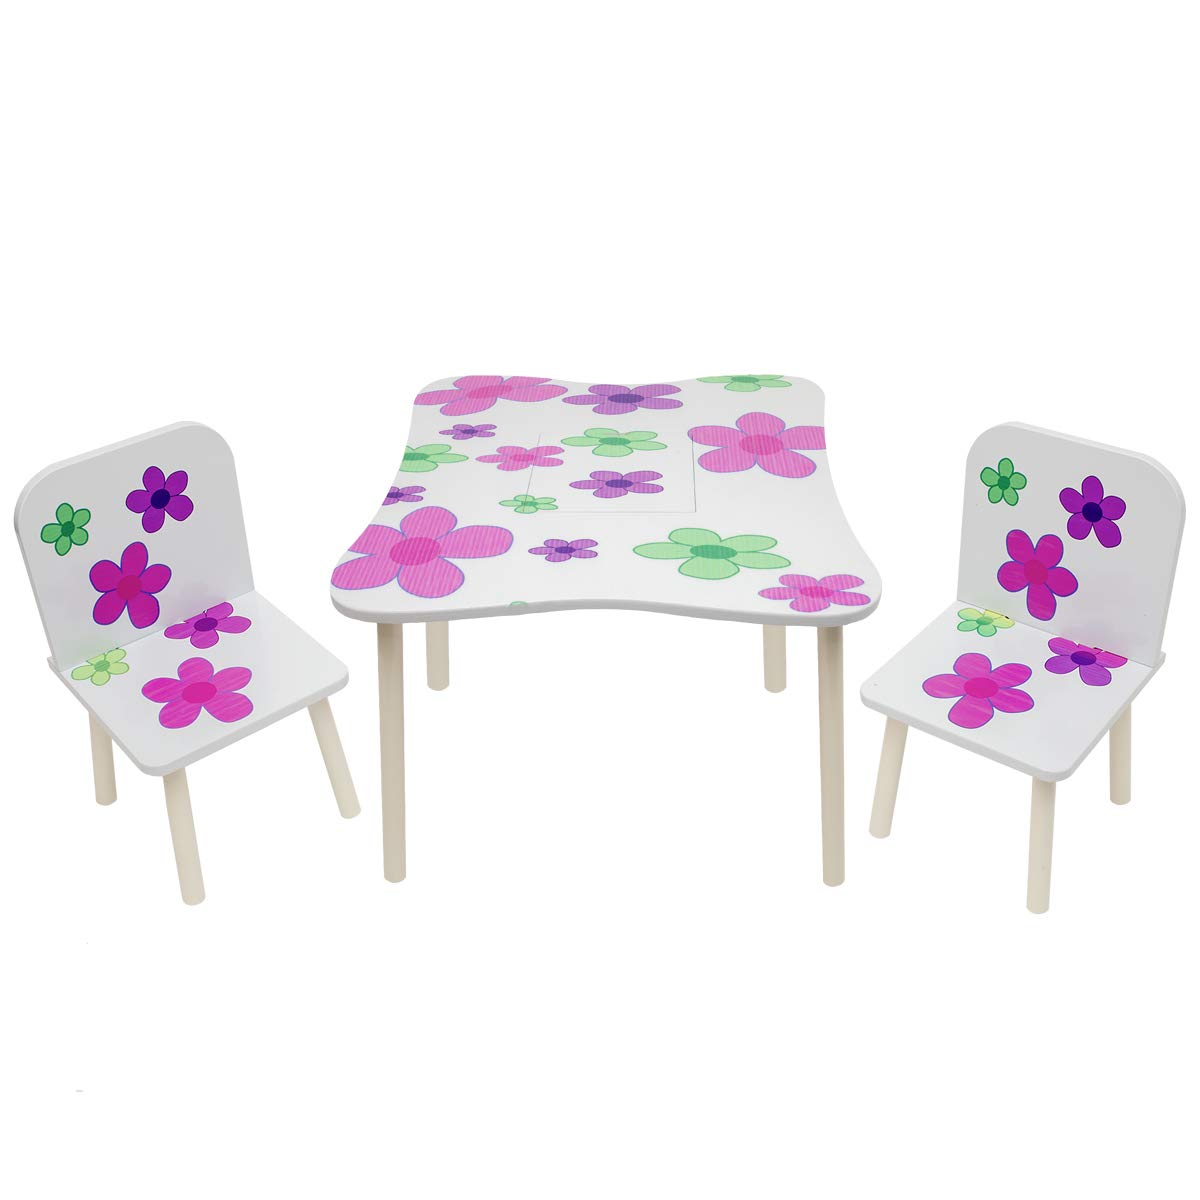 Kids Wooden Table & 2 Chairs Set Children'S Bedroom Playroom Nursery Furniture with extra hidden storage in middle. (Flower Design with round Corner) CMY